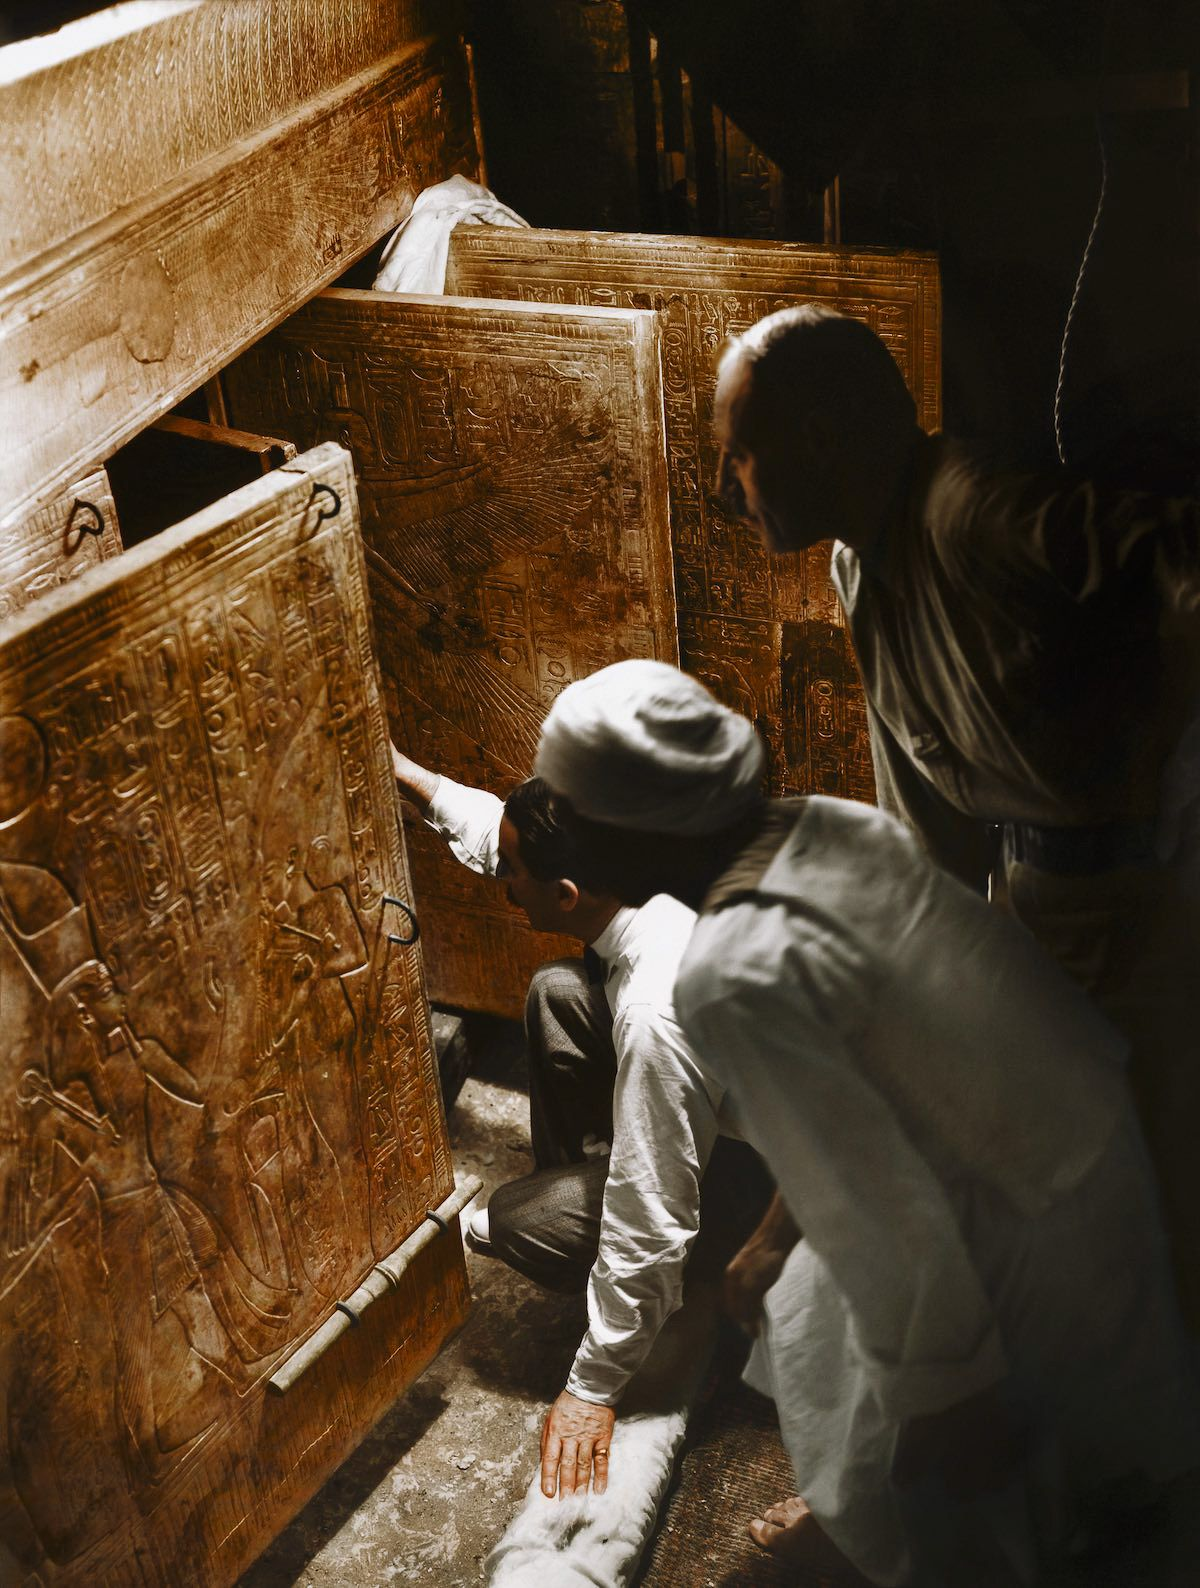 Howard Carter (center) looking inside an Egyptian tomb, colorized by Dynamichrome.